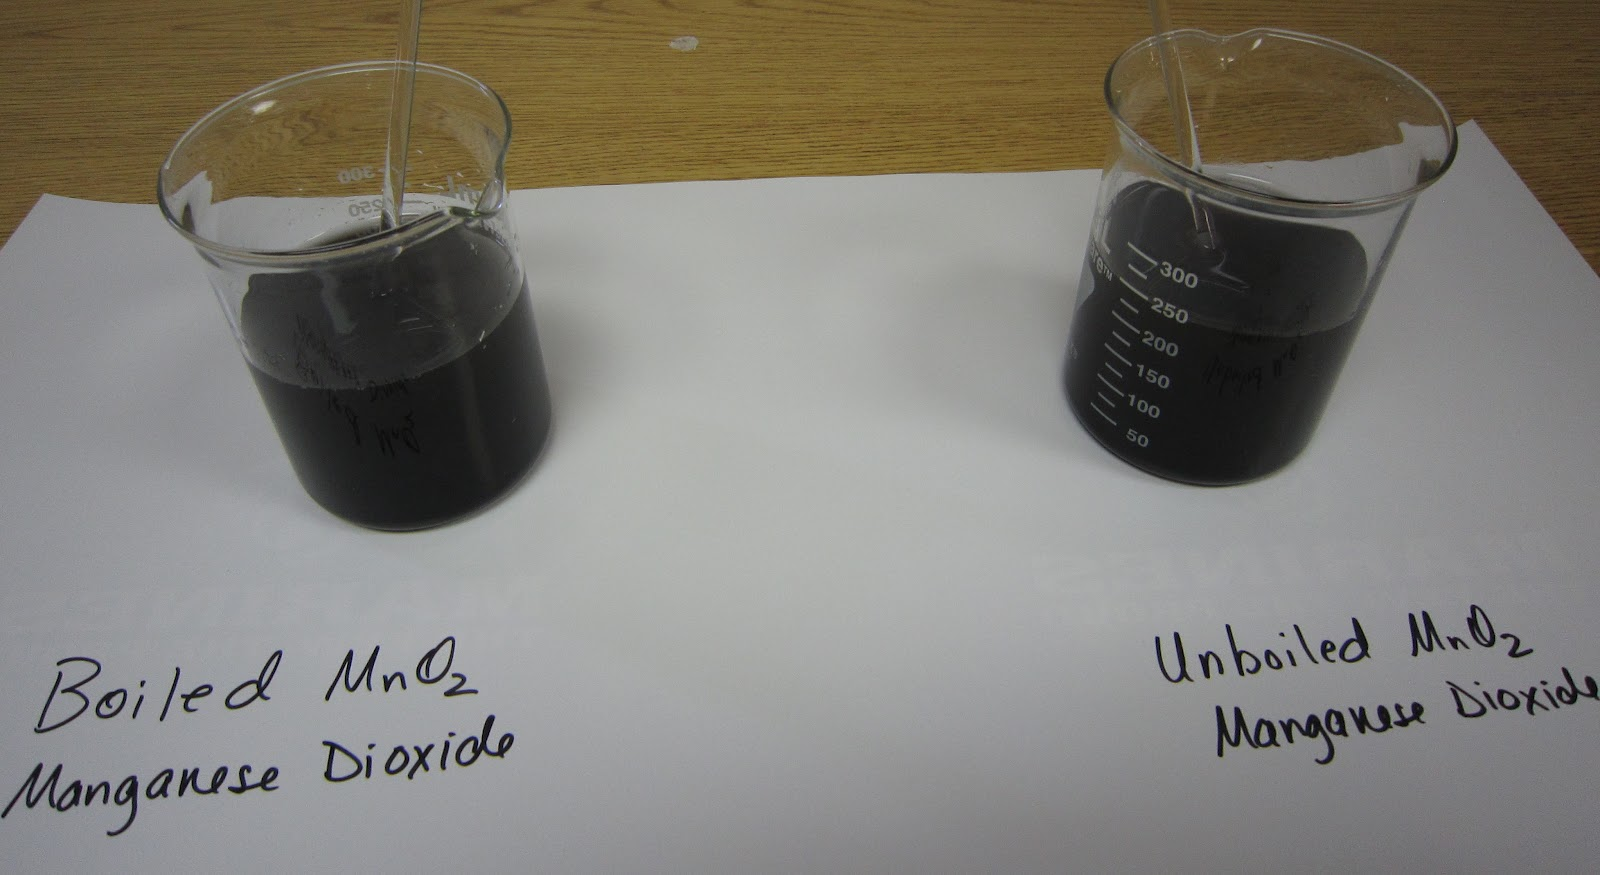 catalase lab View lab report - catalase enzyme lab report from biol 101 at usc catalase enzyme lab report guy guarino abstract enzymes are protein catalyst that speed up the rate of a chemical reaction.